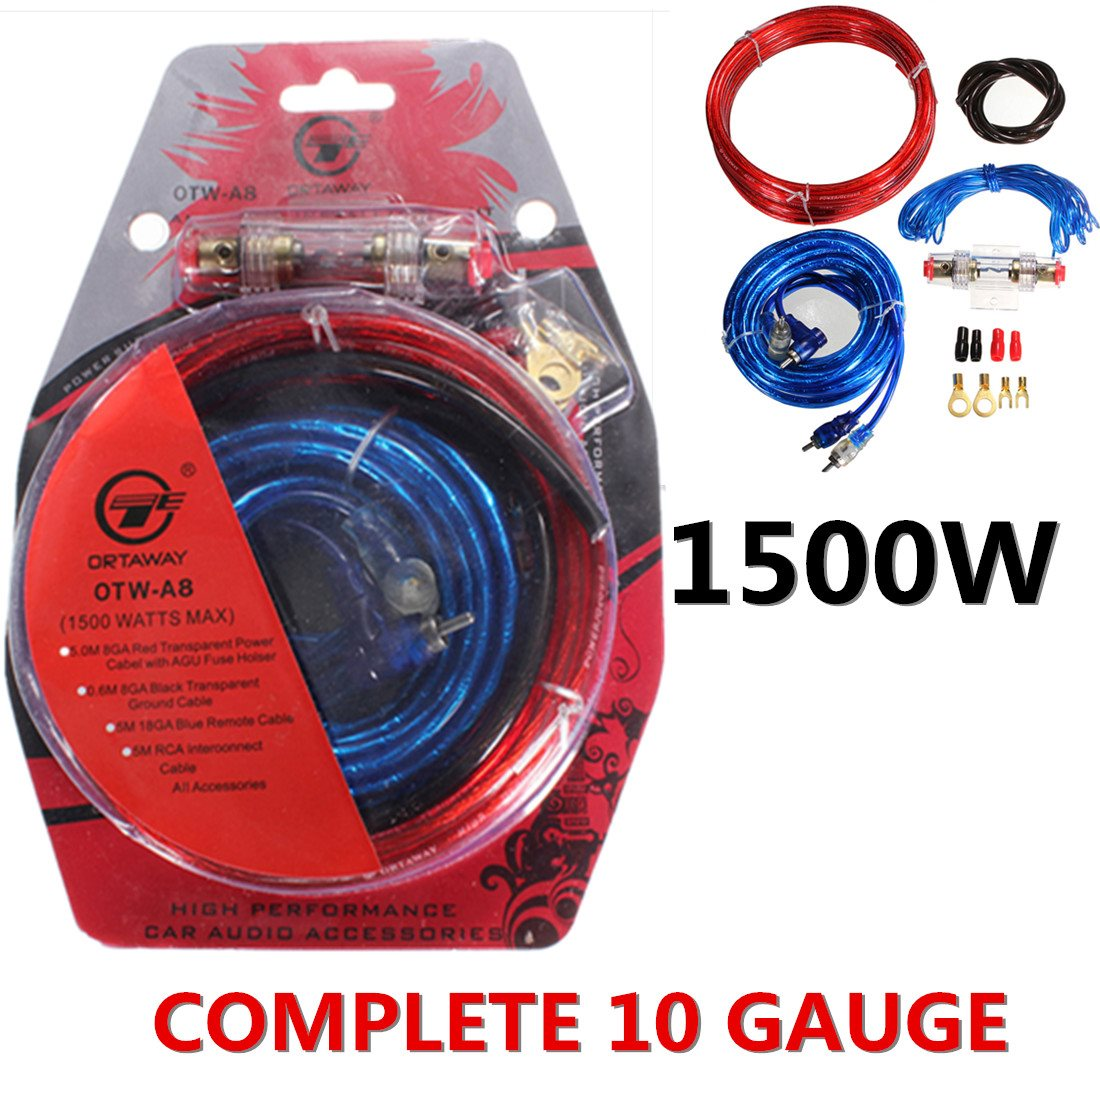 Universal Car Auto Complete Amplifier Wiring Kit Gauge for Speakers Subwoofers